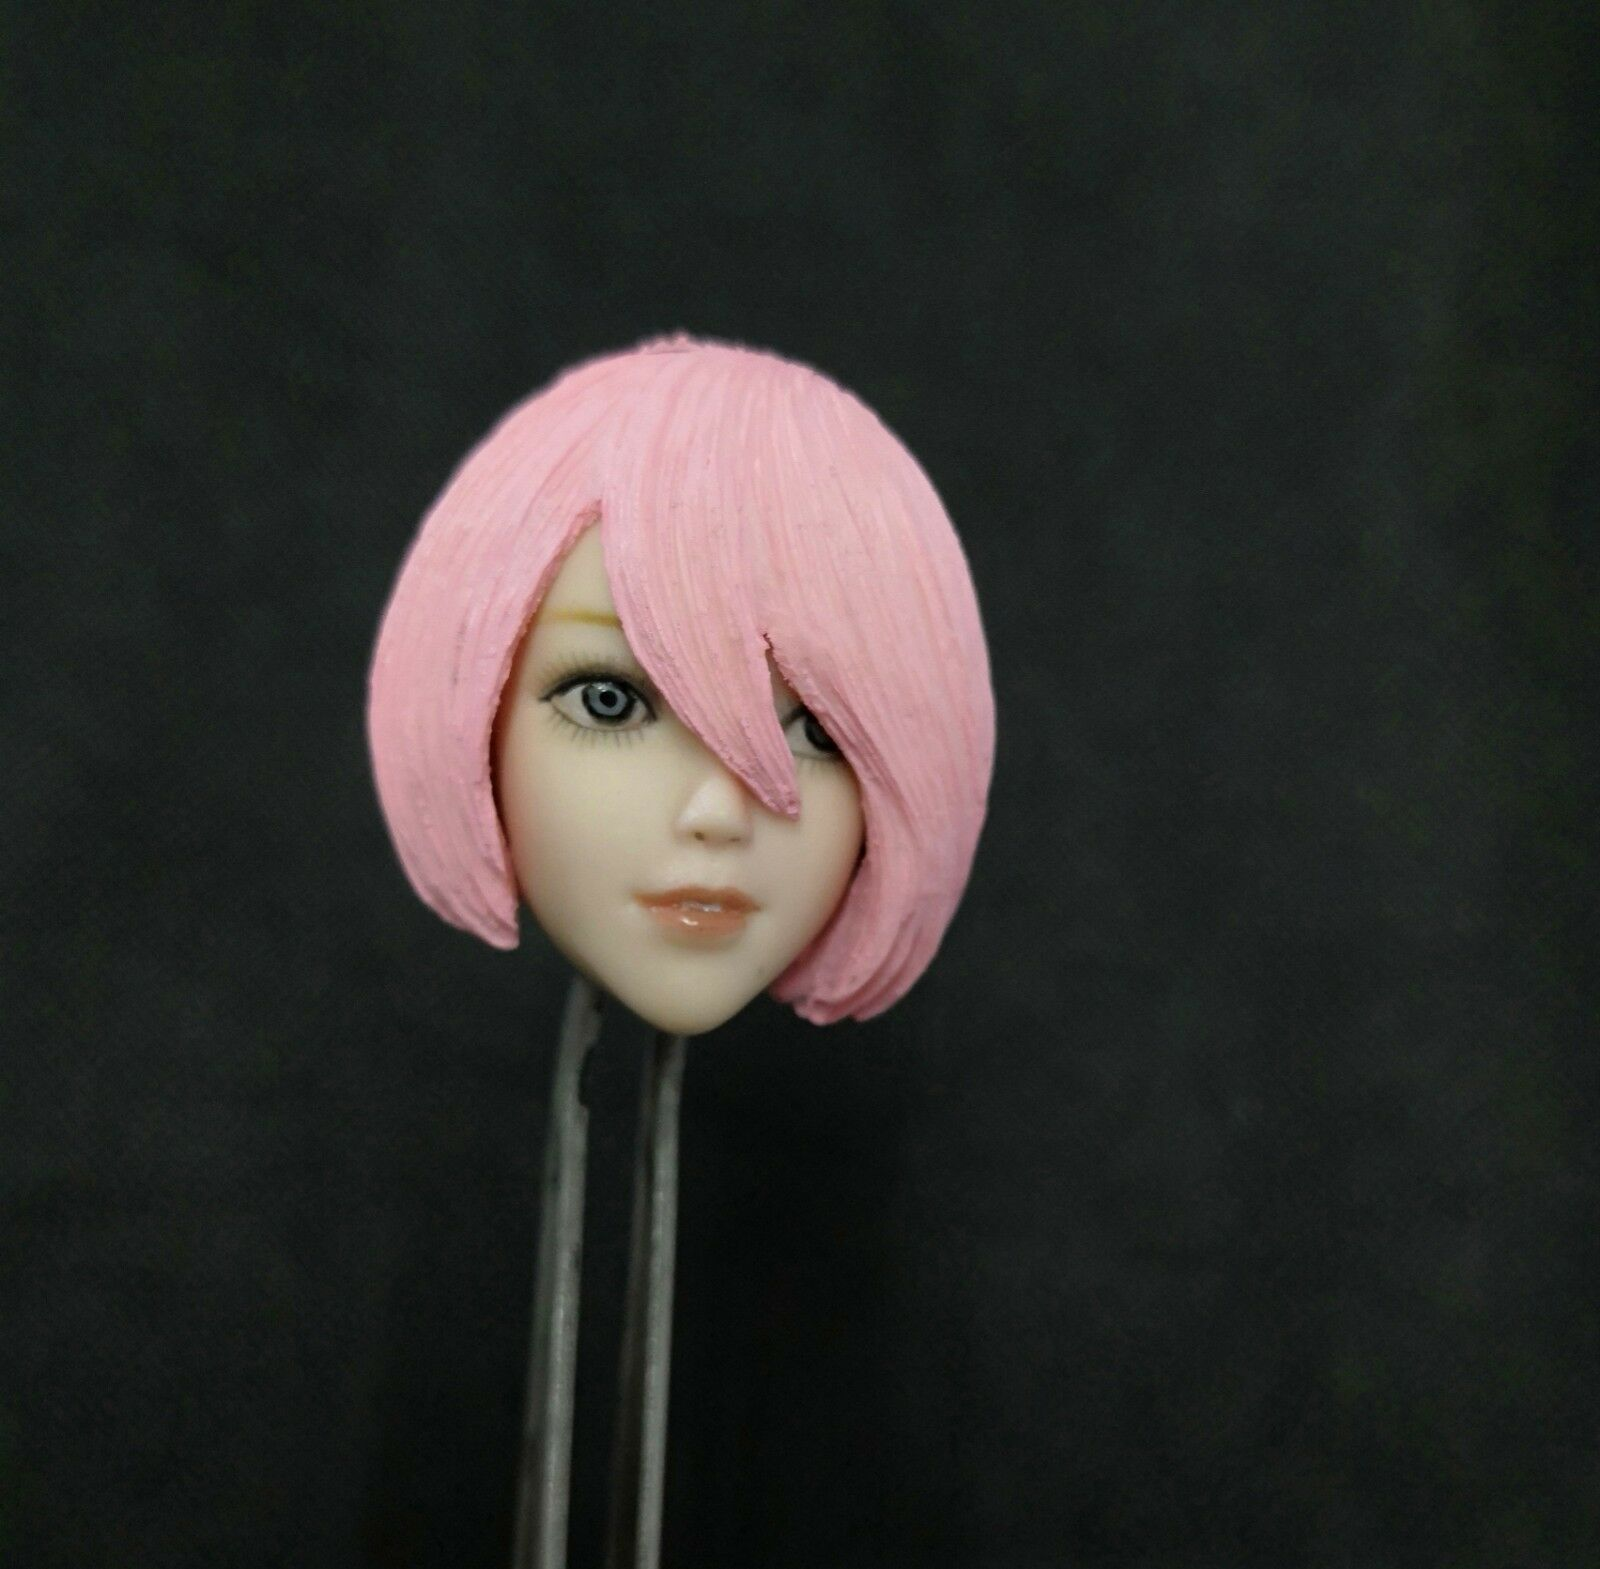 1 6 Pale Skin Anime Female Head Sculpt Toy With Pink Hair Mould Fit 12'' Figure